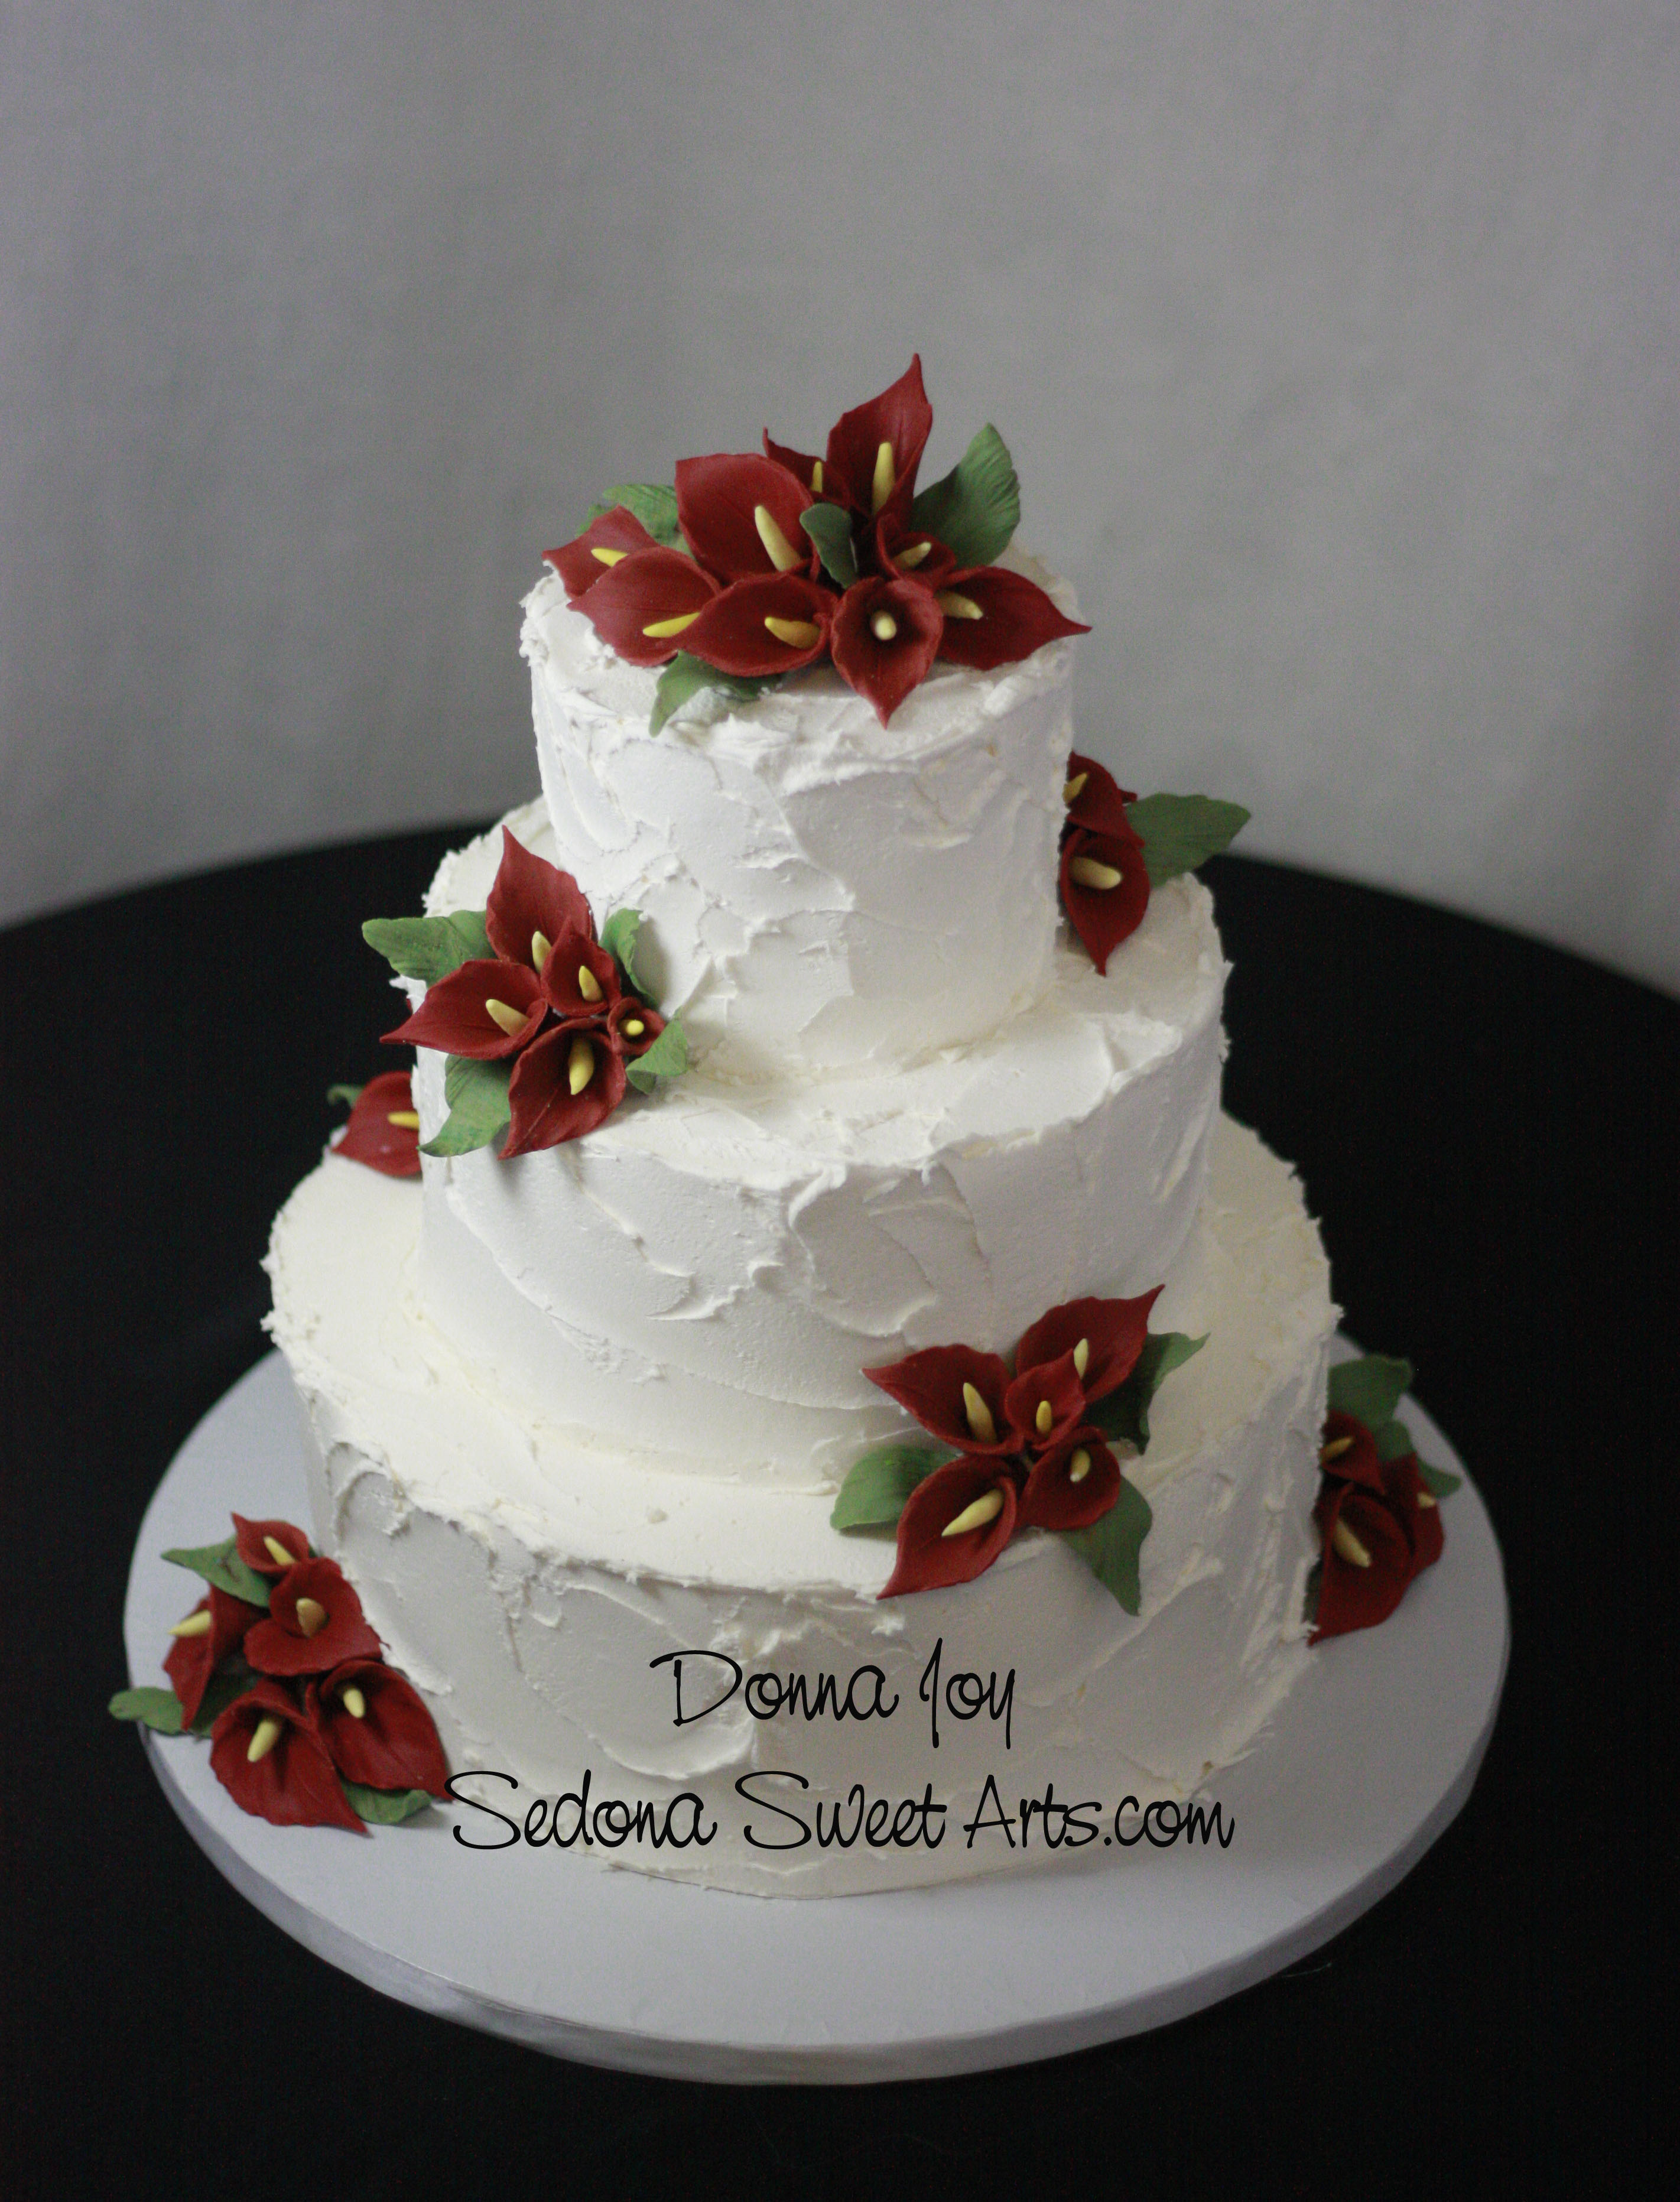 Rustic  organic  Natural wedding cakes     Sedona Wedding Cakes The next cake has a great